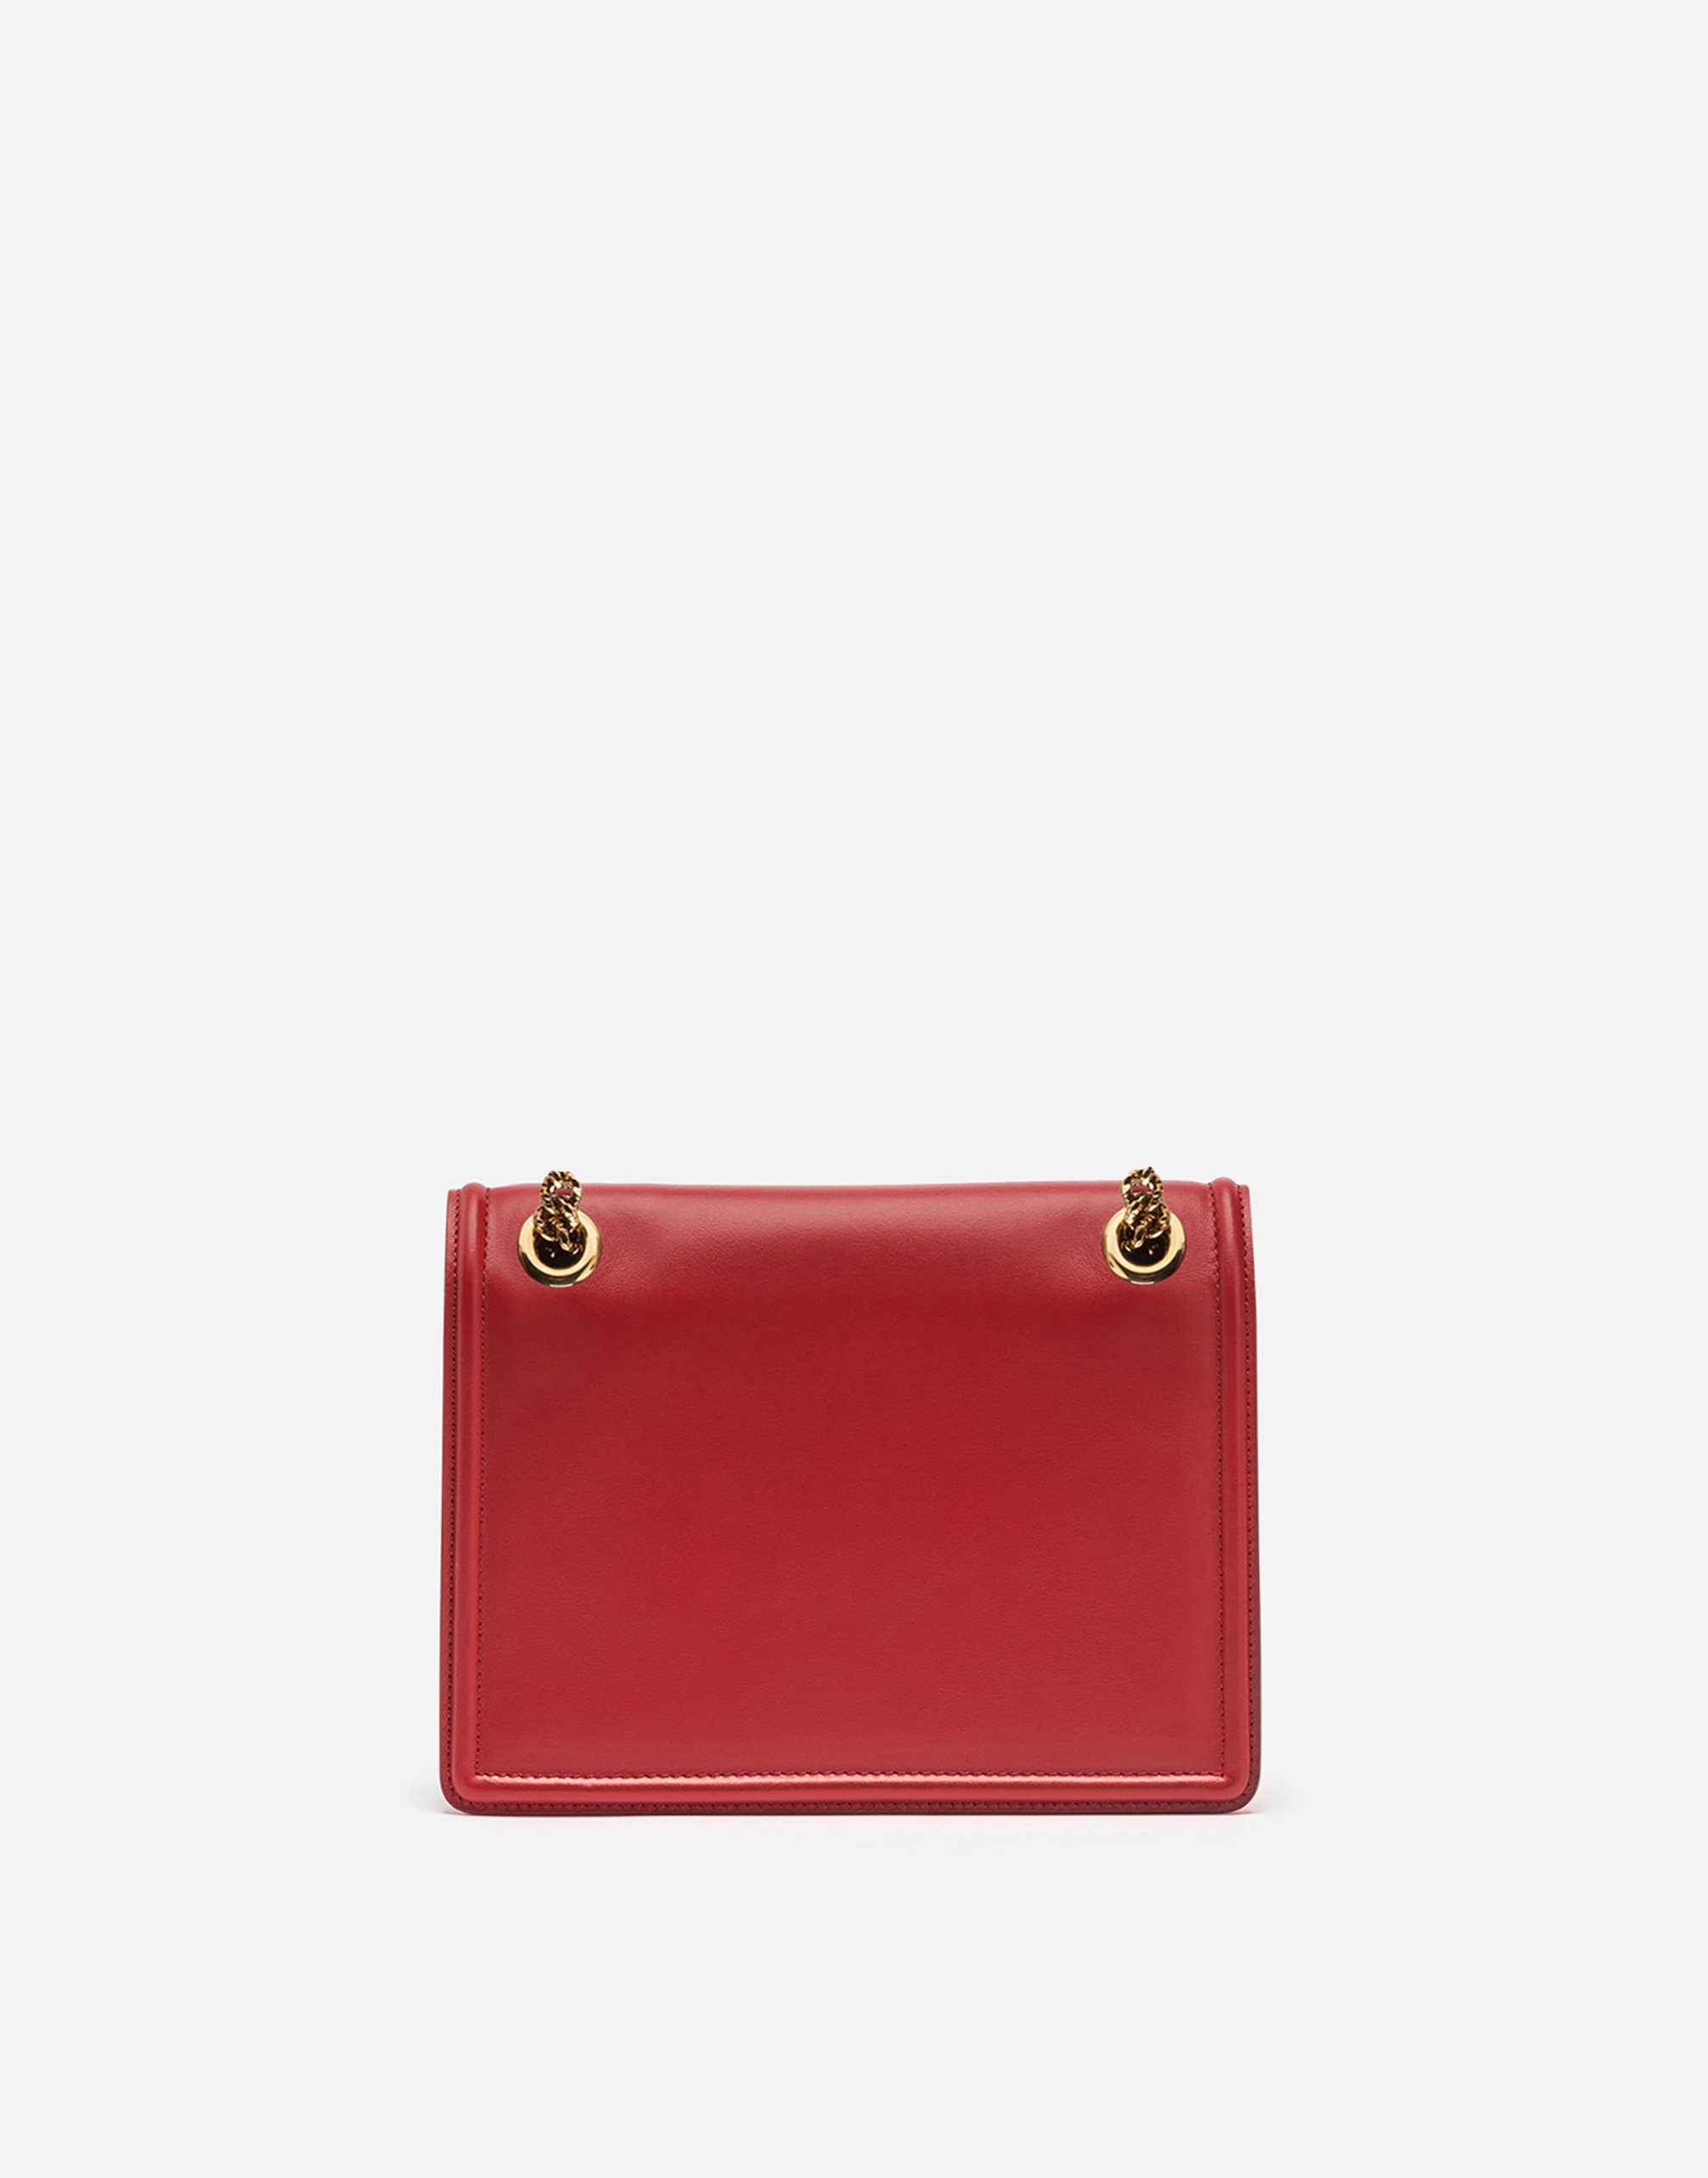 Dolce&Gabbana MEDIUM DEVOTION BAG IN SMOOTH CALFSKIN LEATHER